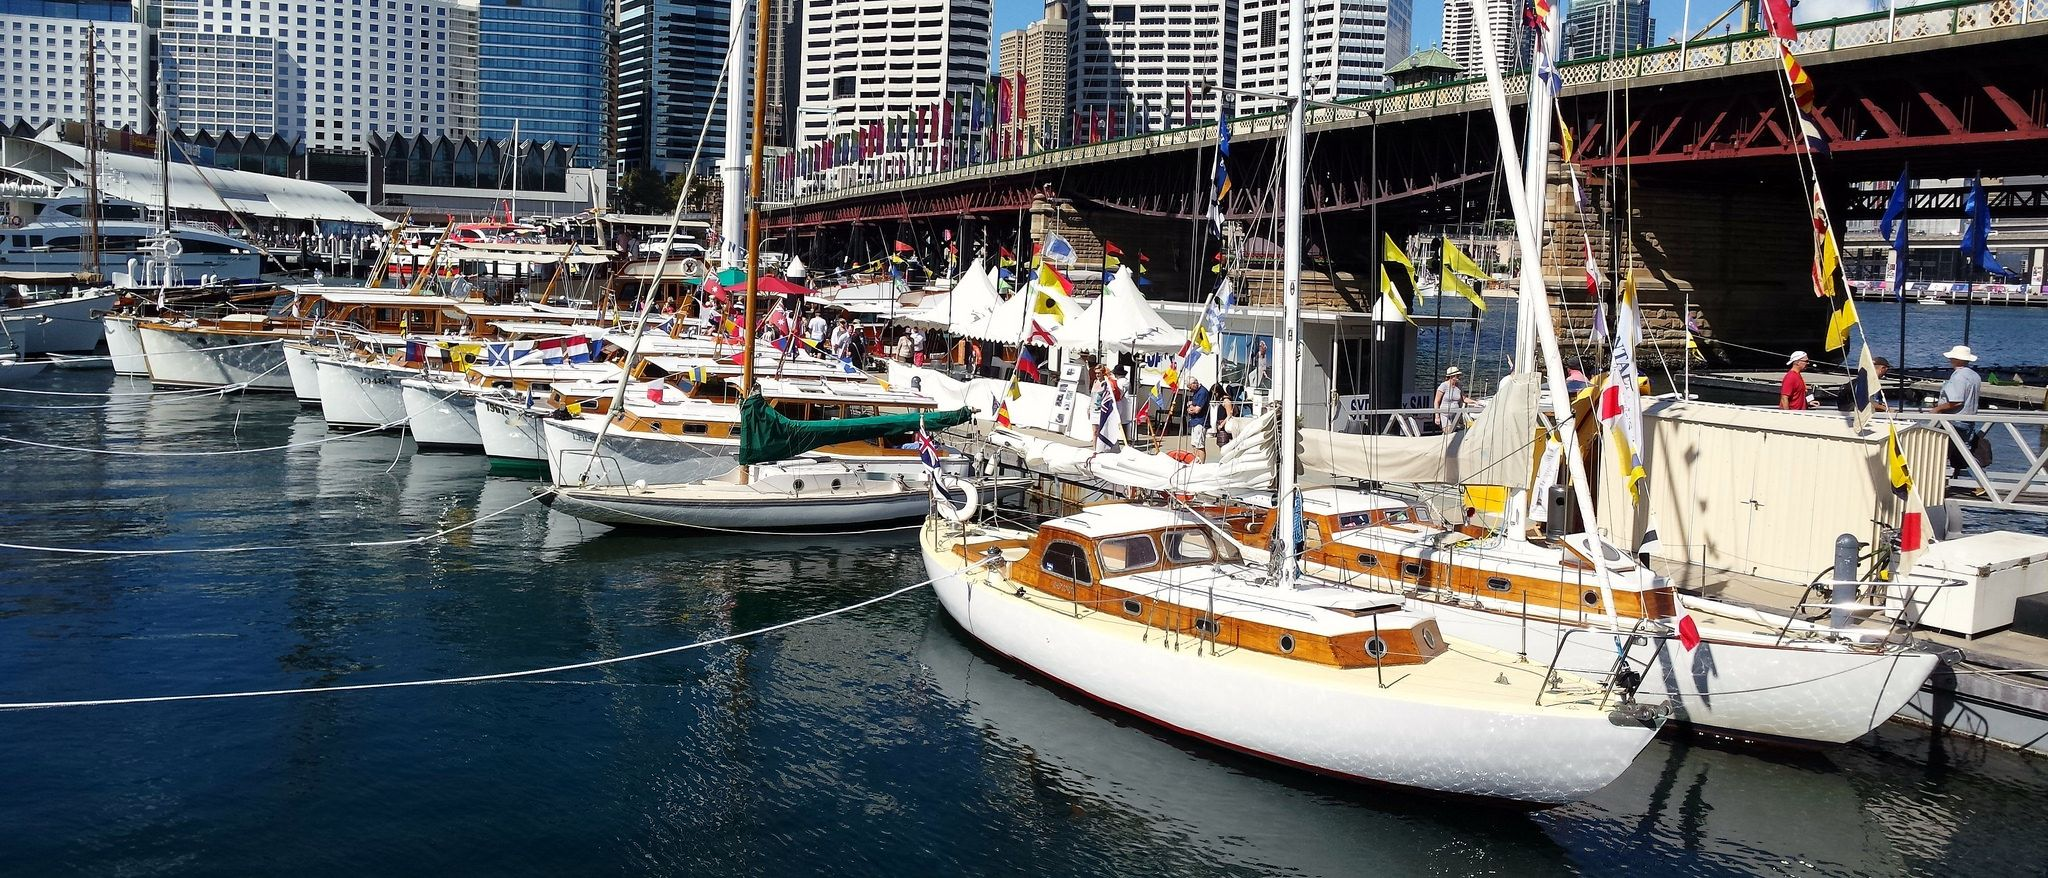 2018 04 1803 55 06 Sydney Classic And Wooden Boat Festival 2018